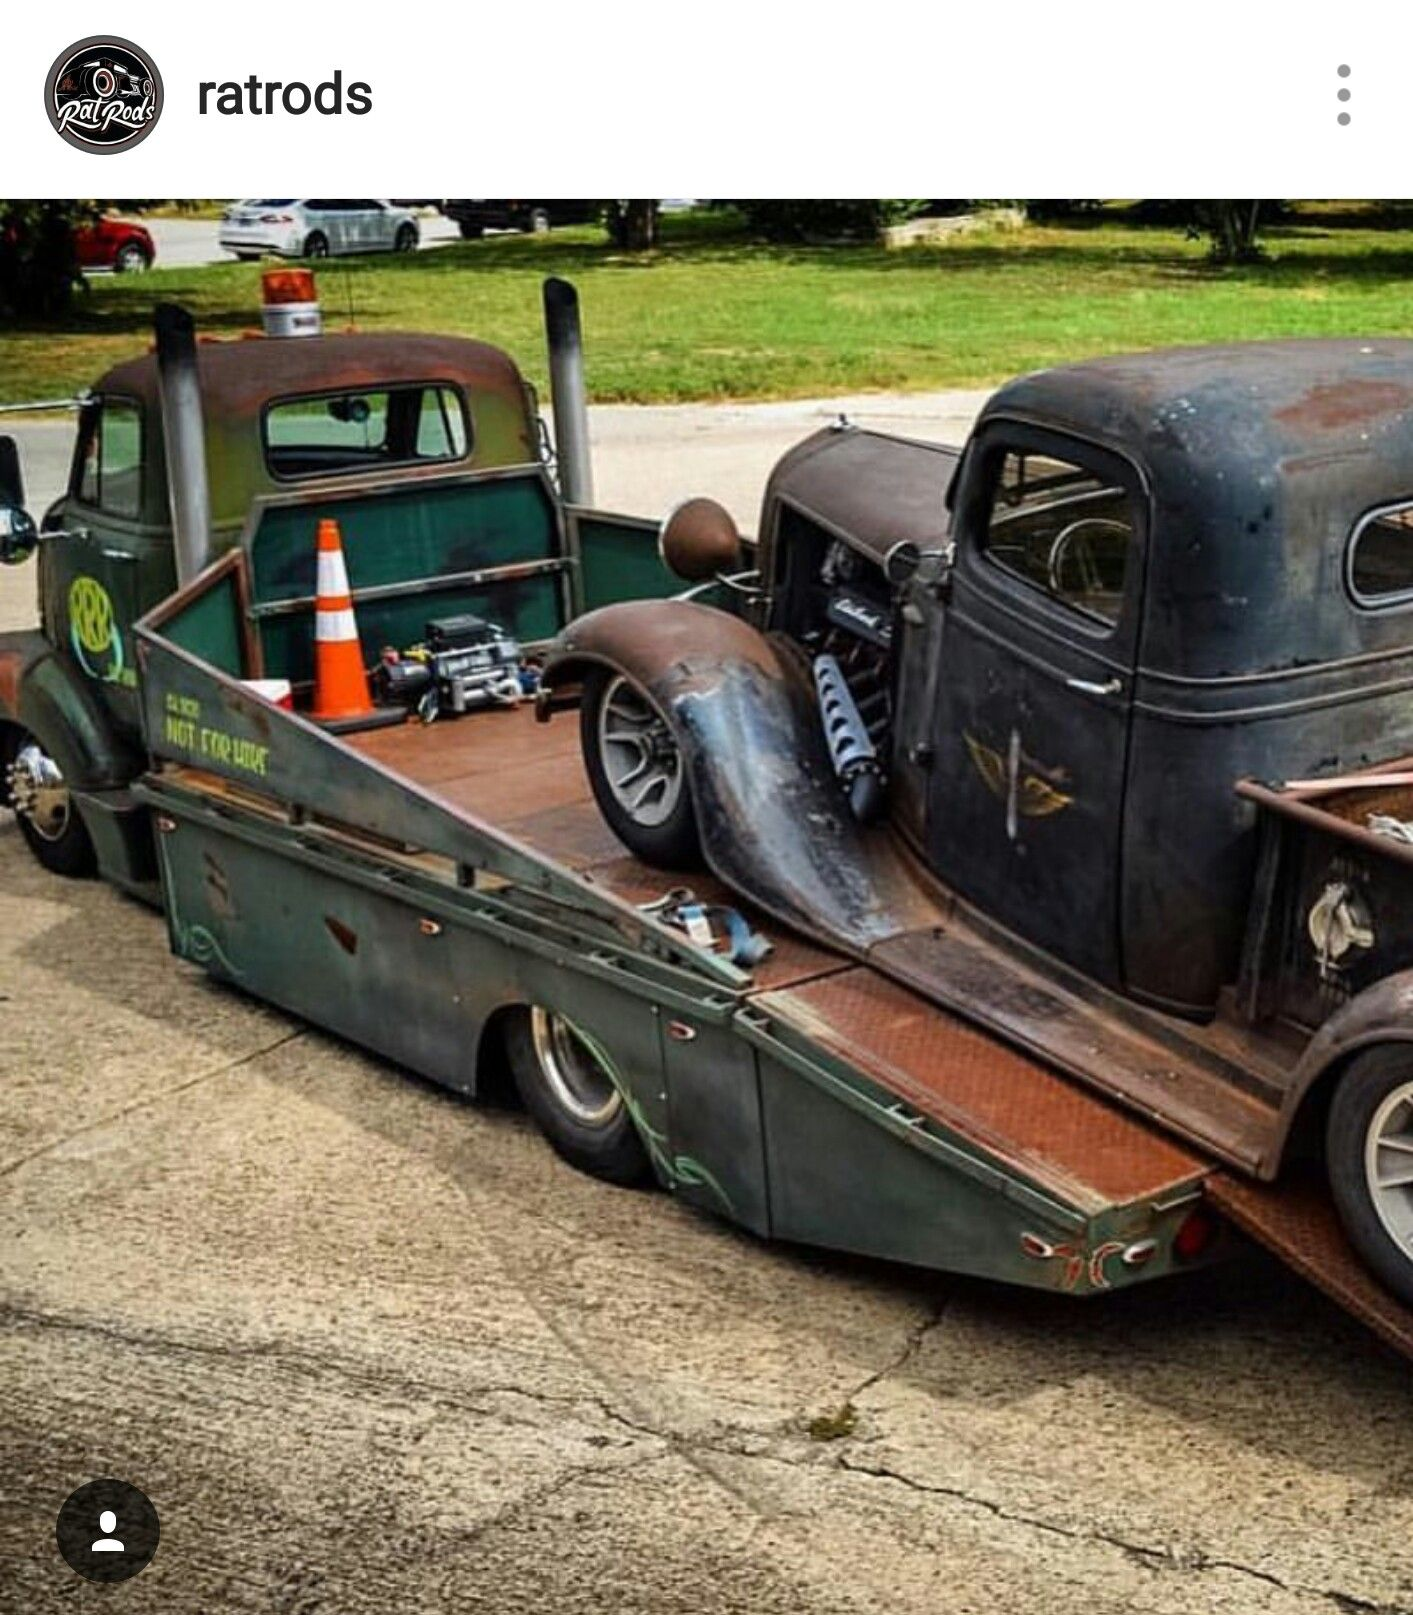 1955 chevrolet hot rod truck pictures to pin on pinterest - Tow Truck Ford Trucks Custom Big Rigs Custom Trucks Classic Trucks Model Car Rat Rods Hot Cars Car Stuff